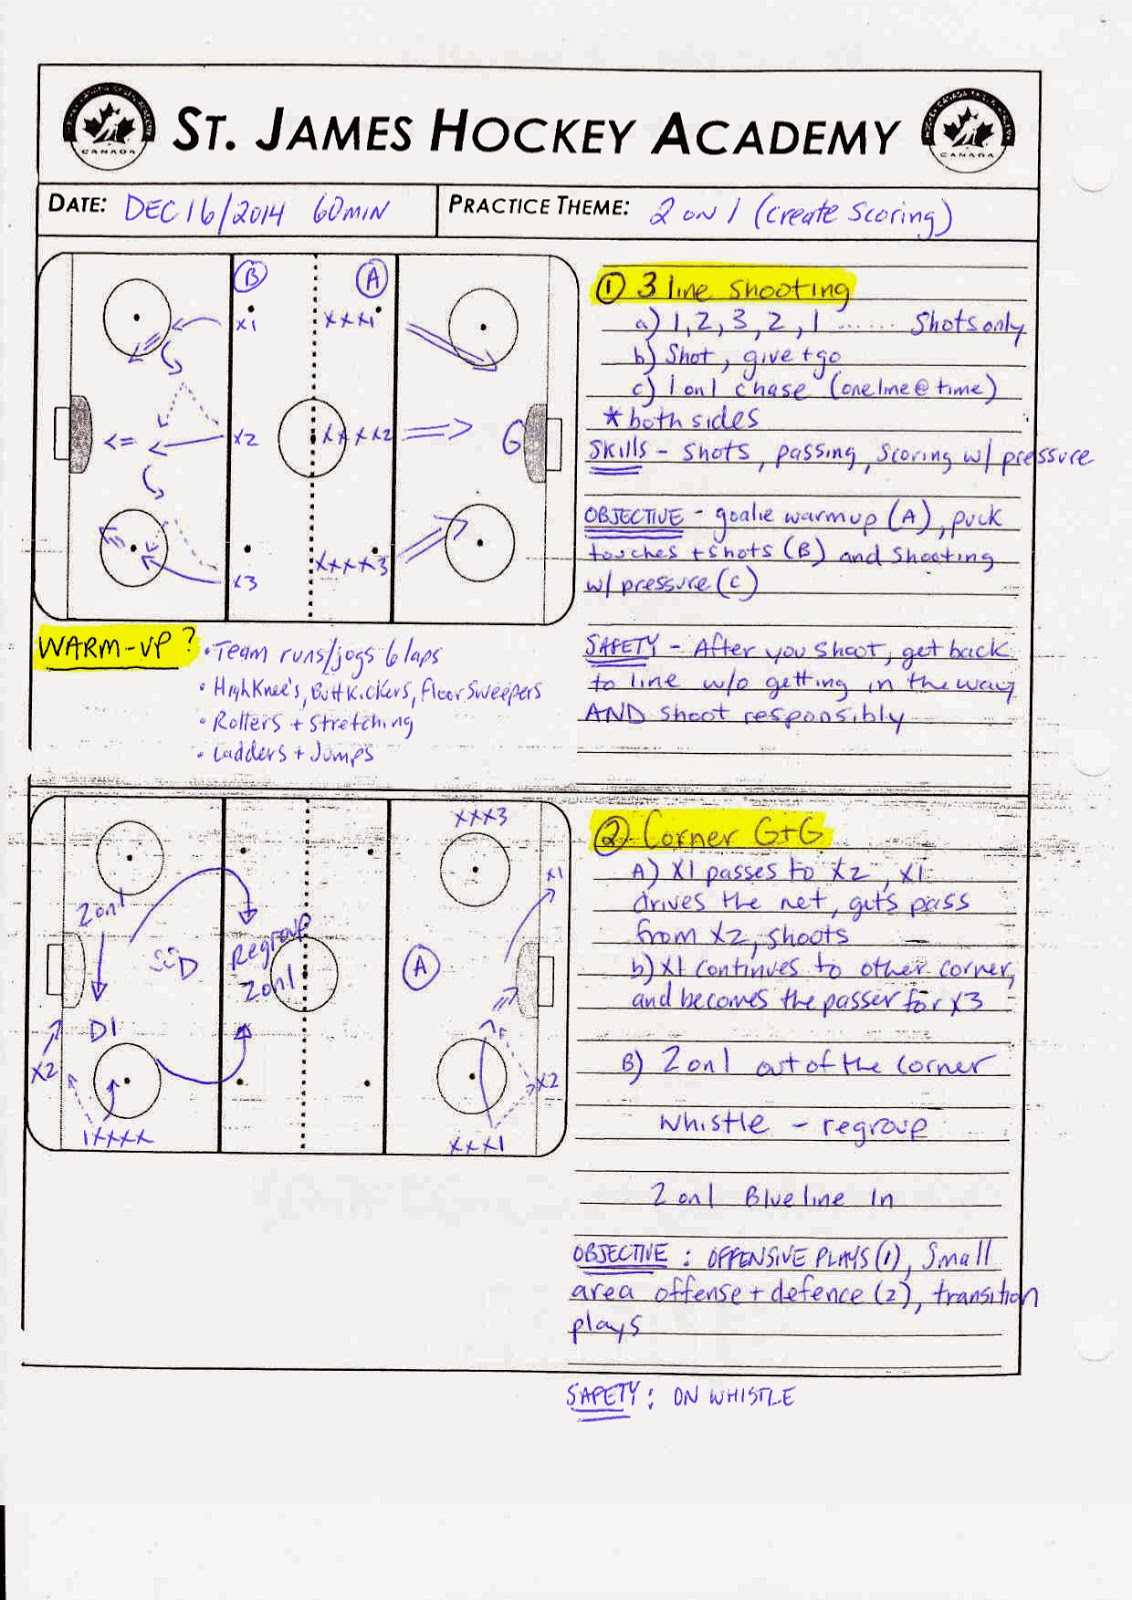 Pin Blank Practice Hockey Drill Sheets On Pinterest 5 Steps With Blank Hockey Practice Plan Template